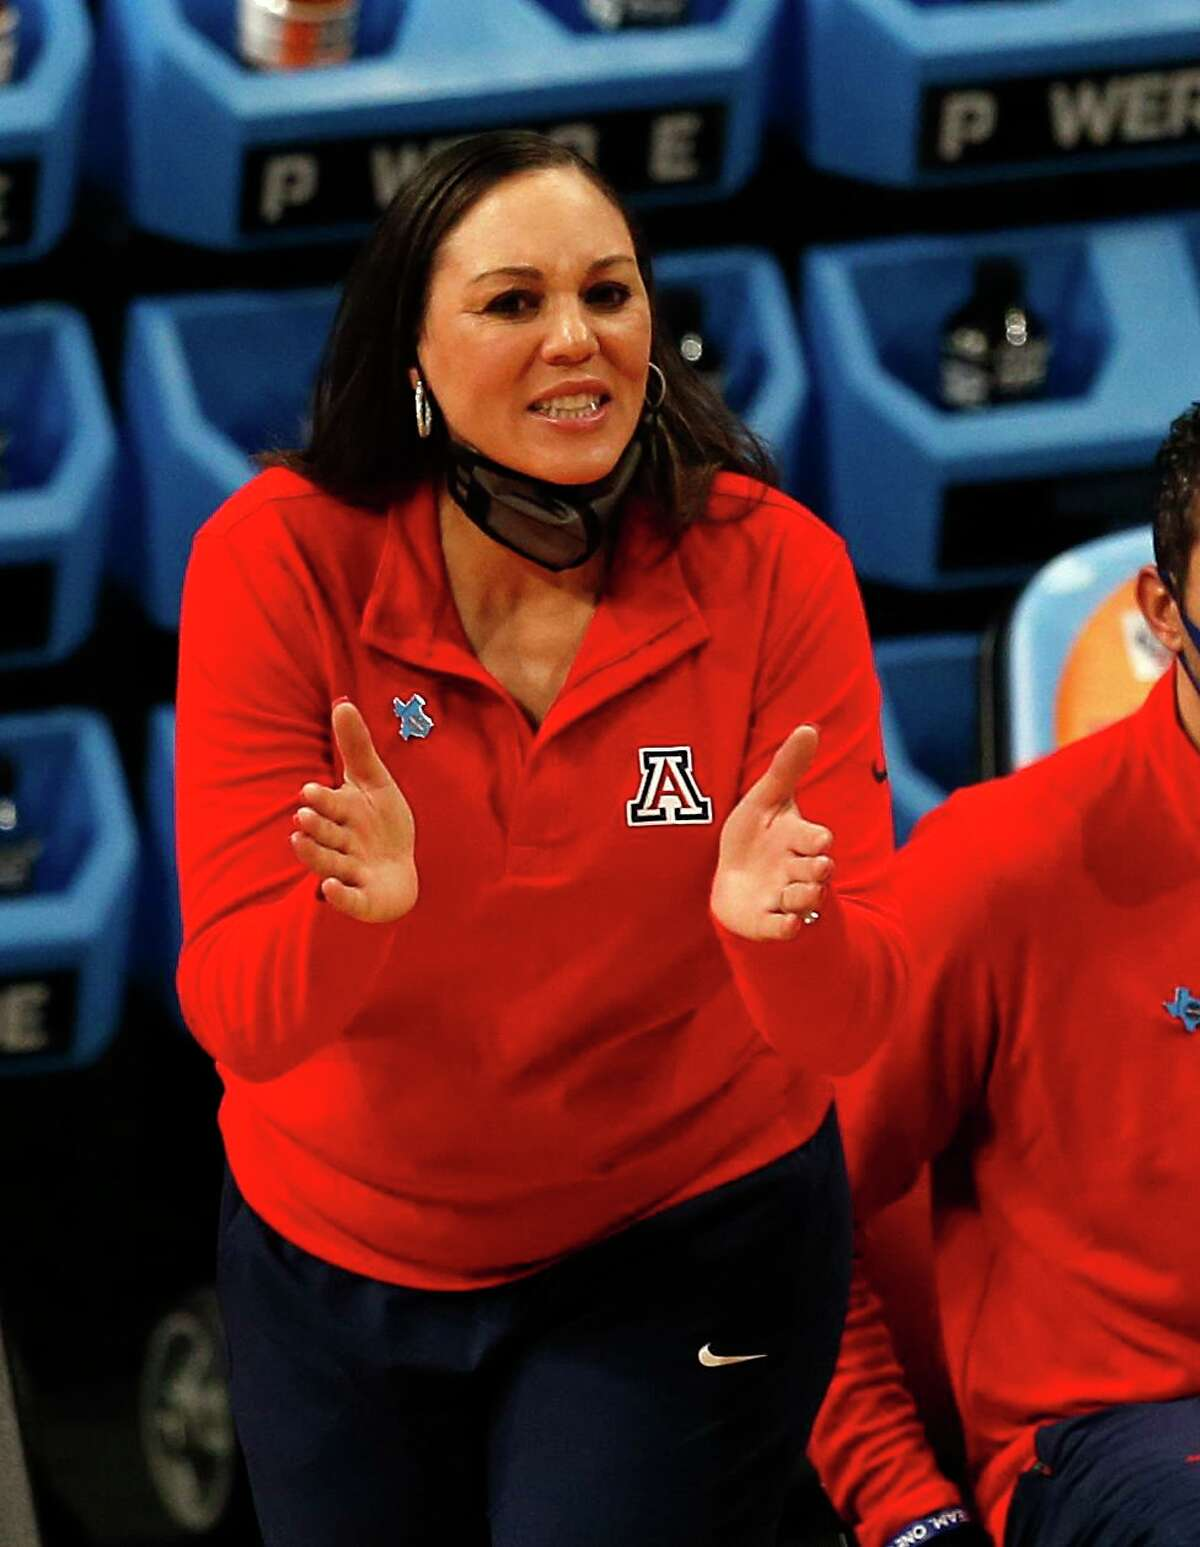 Arizona head coach Adia Barnes cheers on her team in the first half on Friday, April 2, 2021 at the Alamodome.